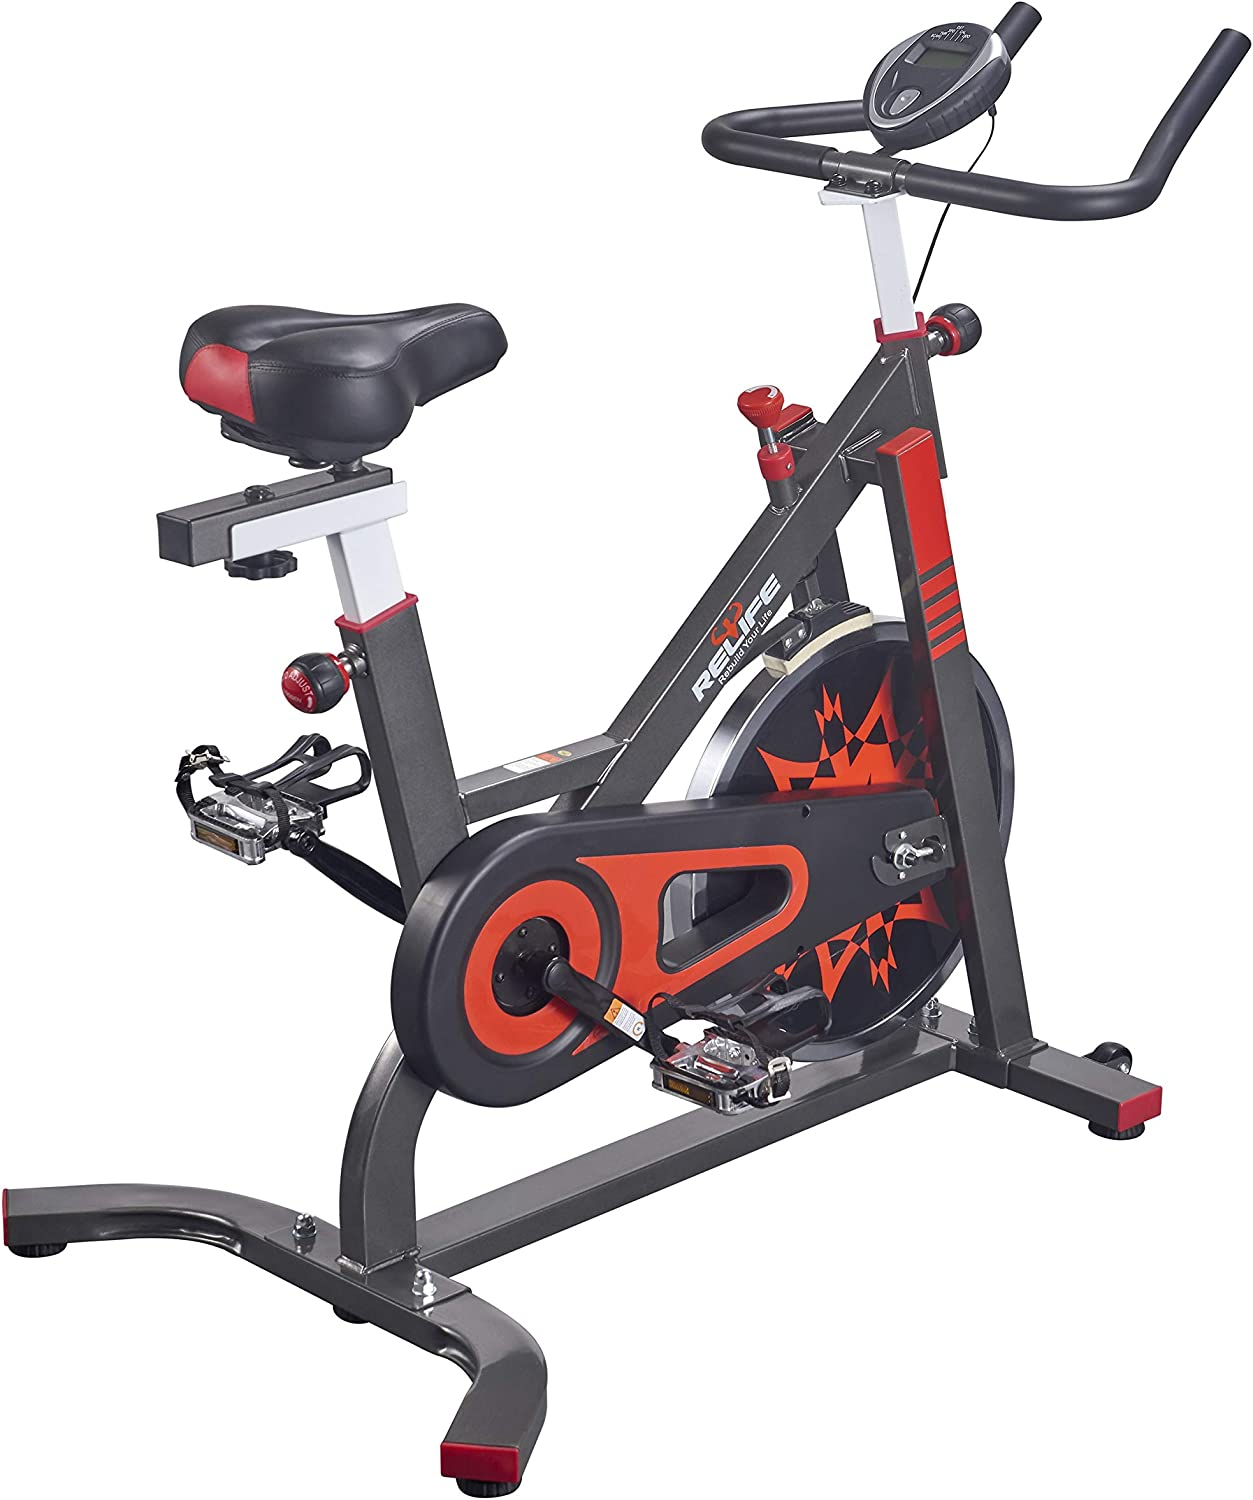 RELIFE REBUILD YOUR LIFE Exercise Bike Indoor Cycling Bicycle Stationary Bikes Cardio Workout Machine Upright Bike Belt Drive Home Gym